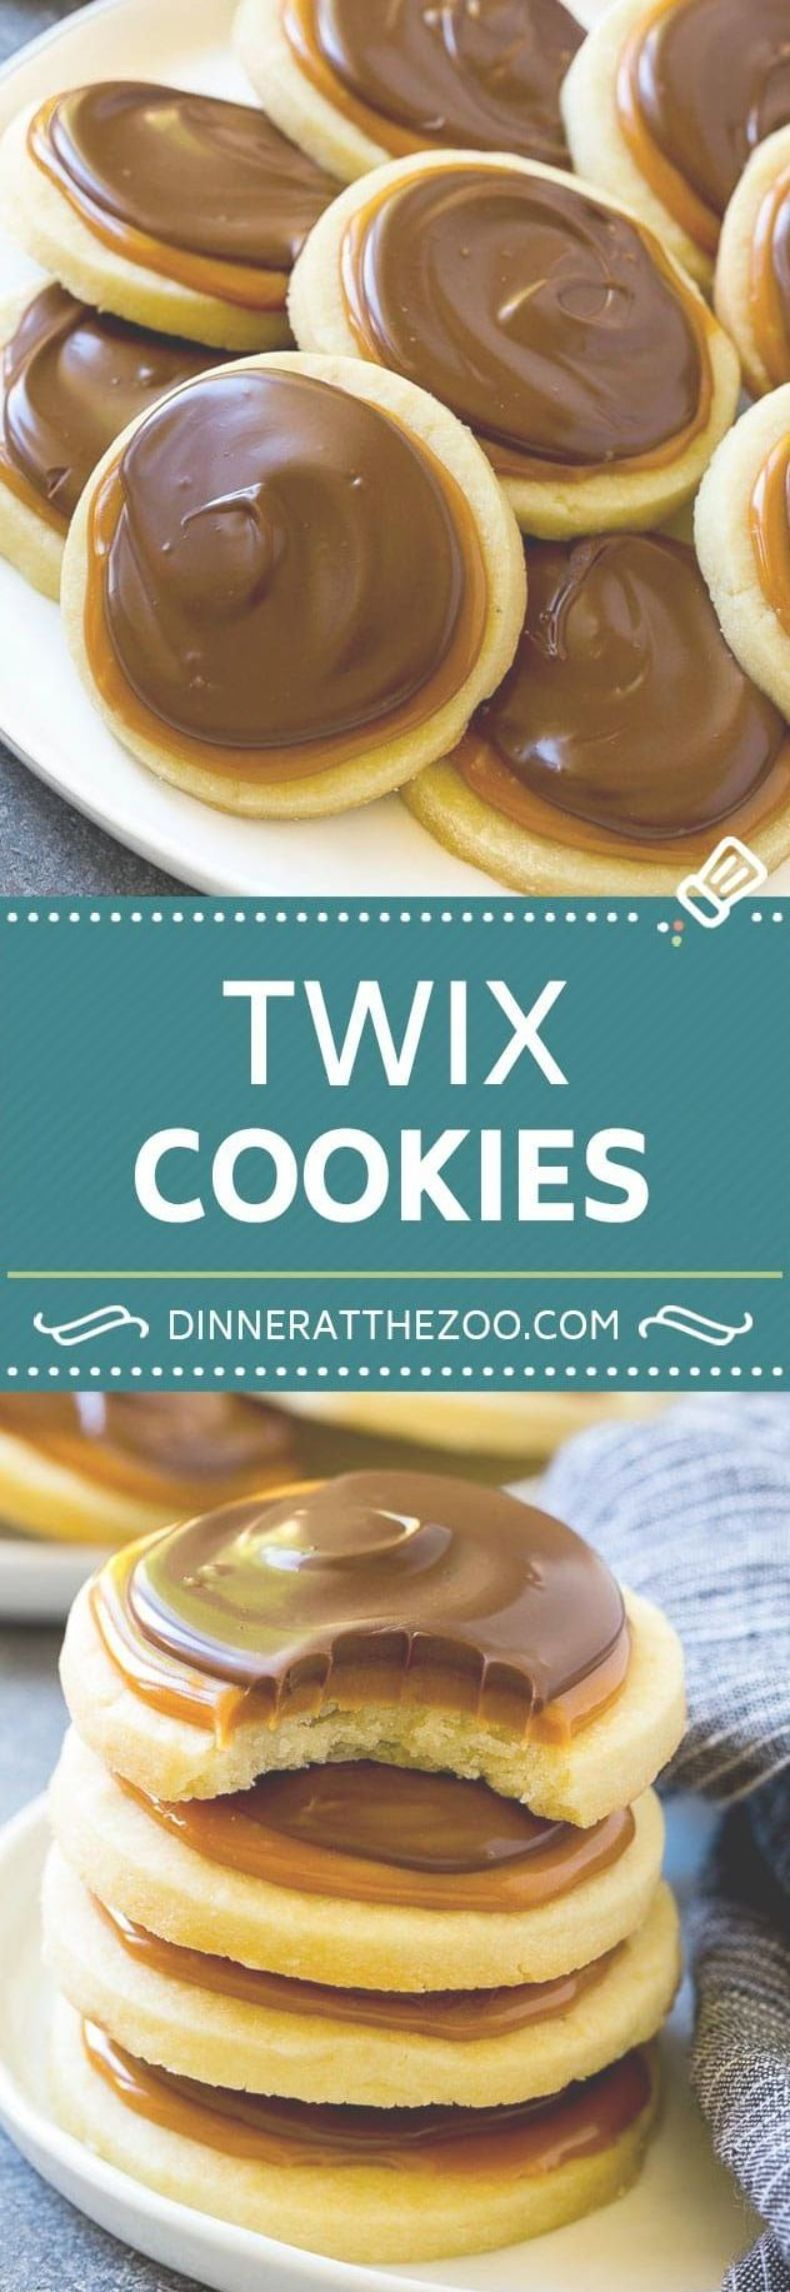 Twix Cookies Recipe | Chocolate Caramel Cookies | Shortbread Cookies #cookies #baking #caramel #chocolate #dessert #dinneratthezoo #twixcookies Twix Cookies Recipe | Chocolate Caramel Cookies | Shortbread Cookies #cookies #baking #caramel #chocolate #dessert #dinneratthezoo #twixcookies